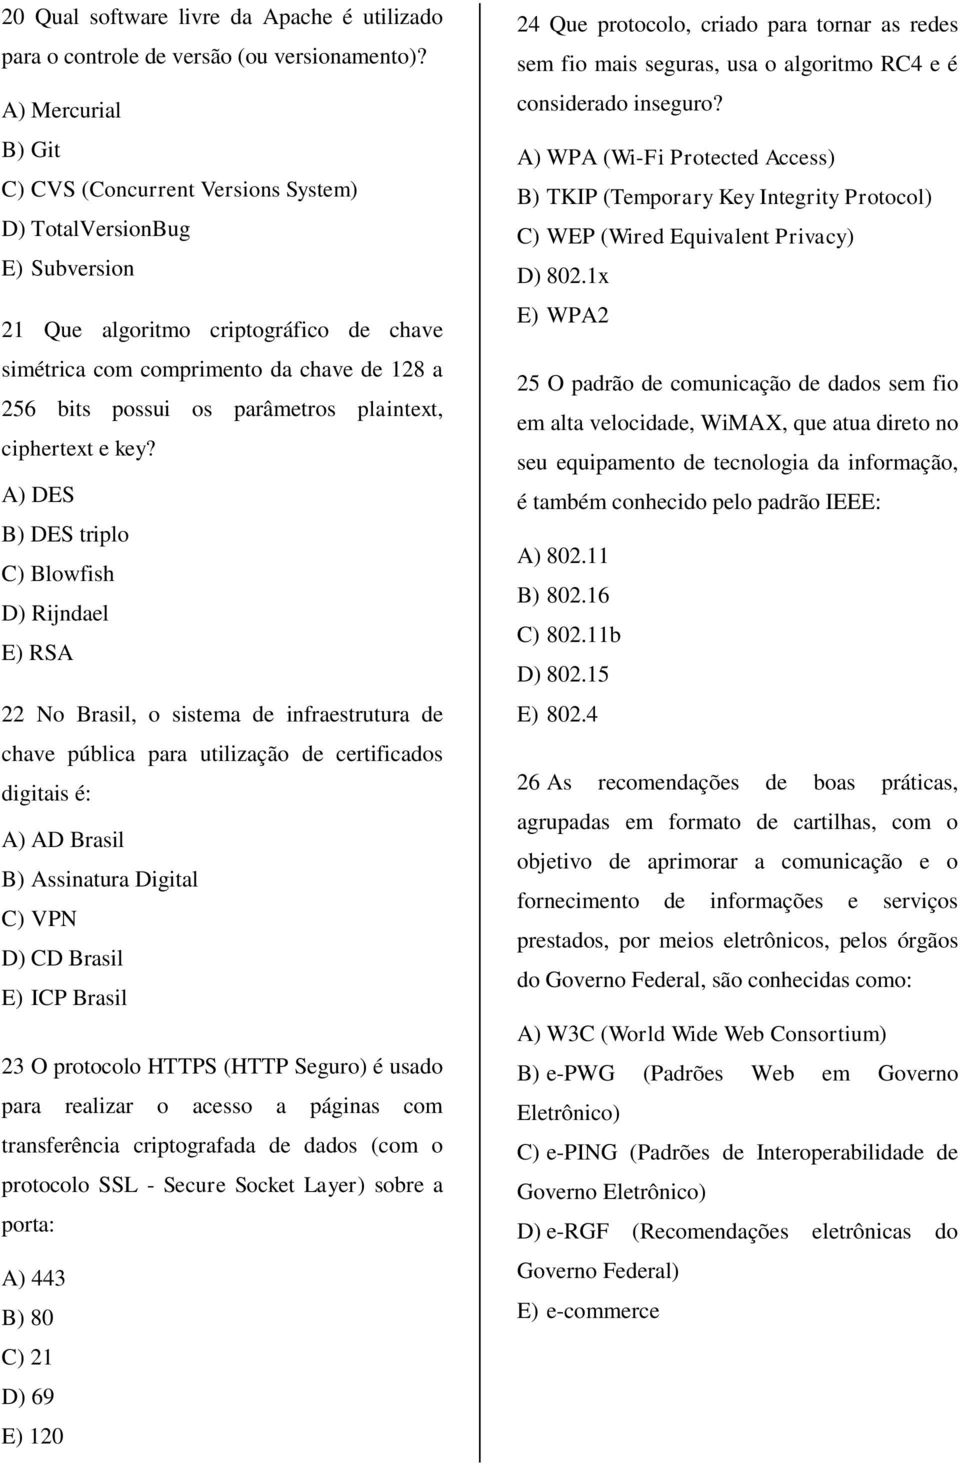 parâmetros plaintext, ciphertext e key?